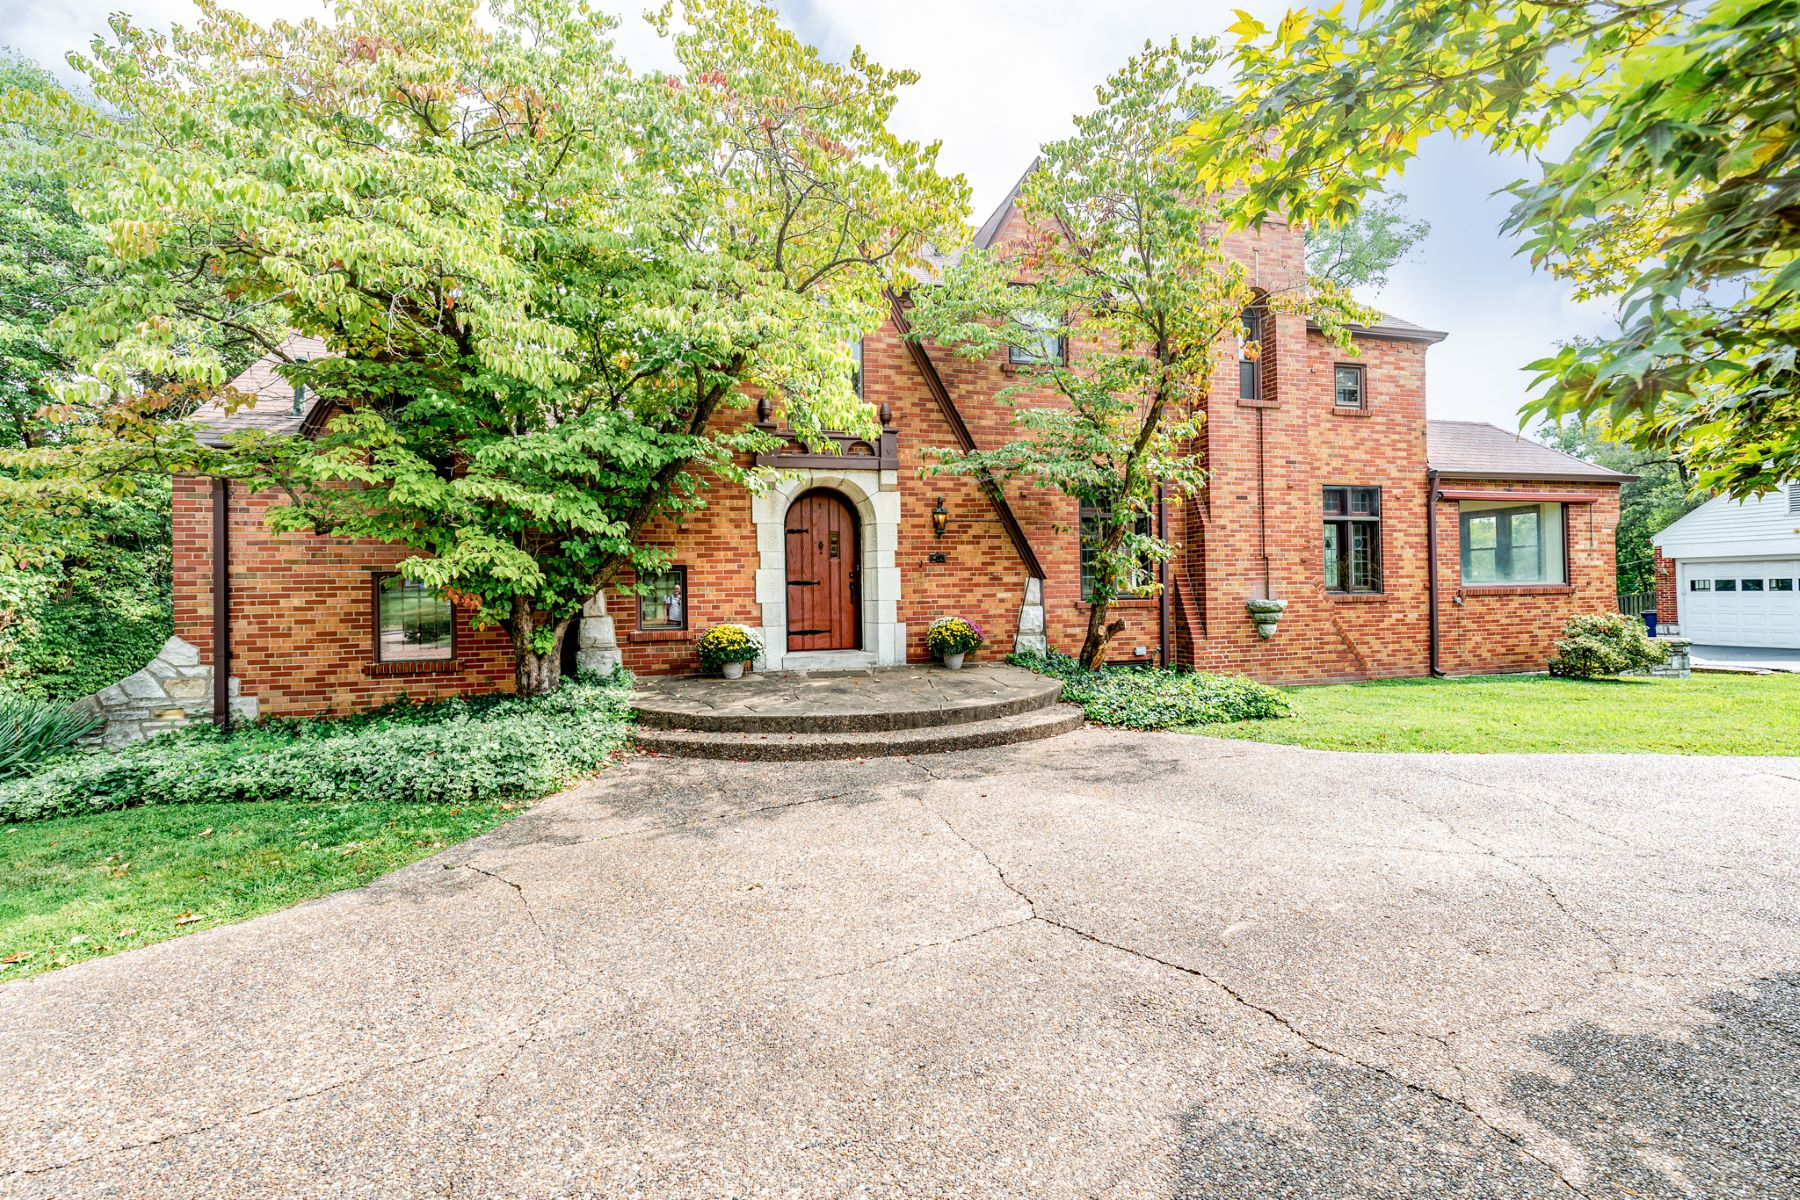 Property for Sale at Stately Brick Home With Old World Charm 13 Bellerive Acres St. Louis, Missouri 63121 United States